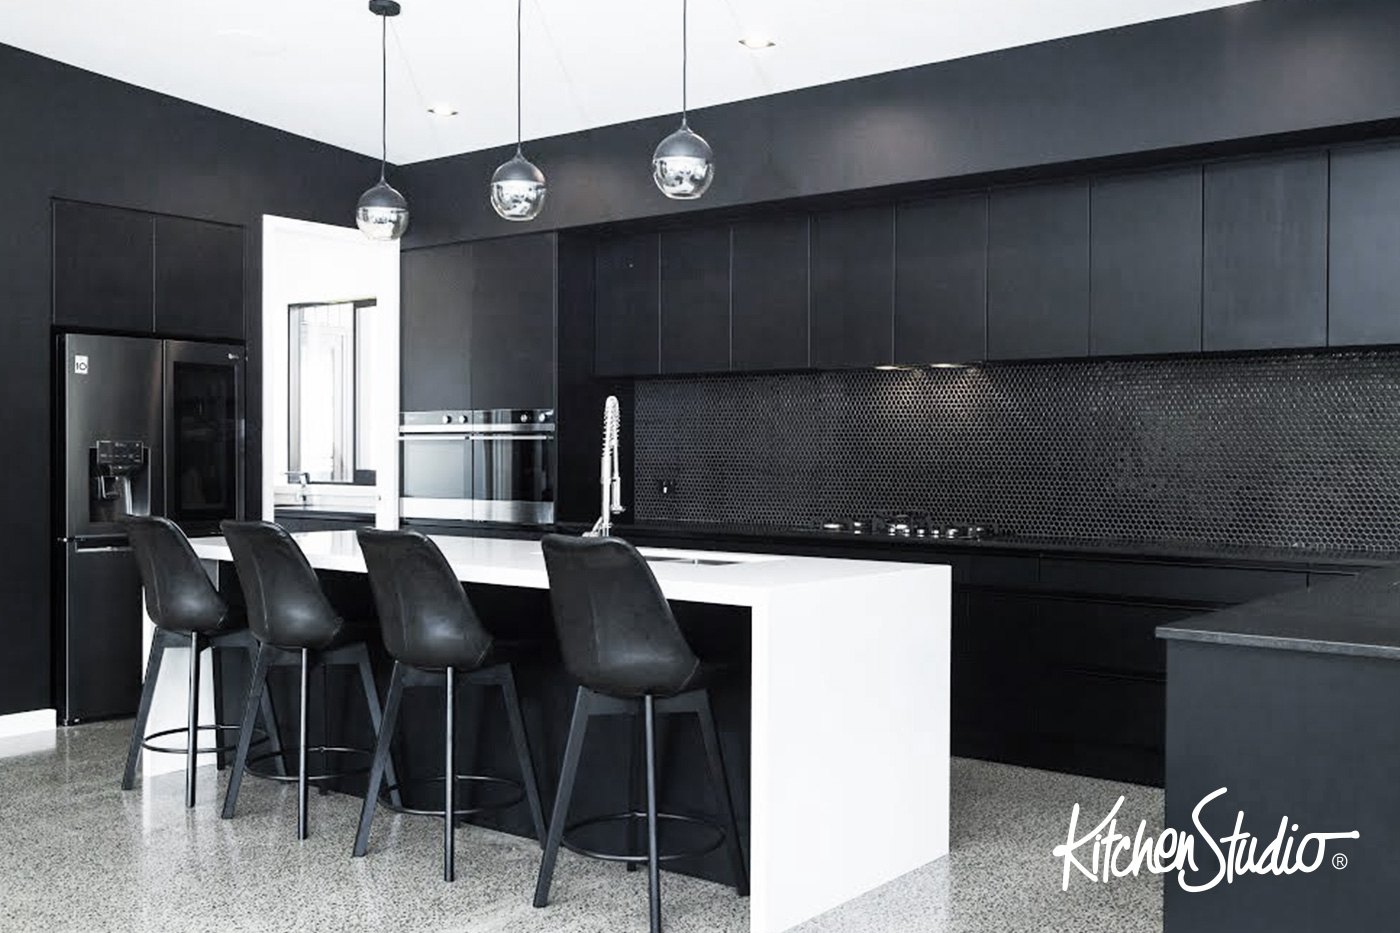 Kitchen Studio Design Awards 9 • A Black and White Decision by ...